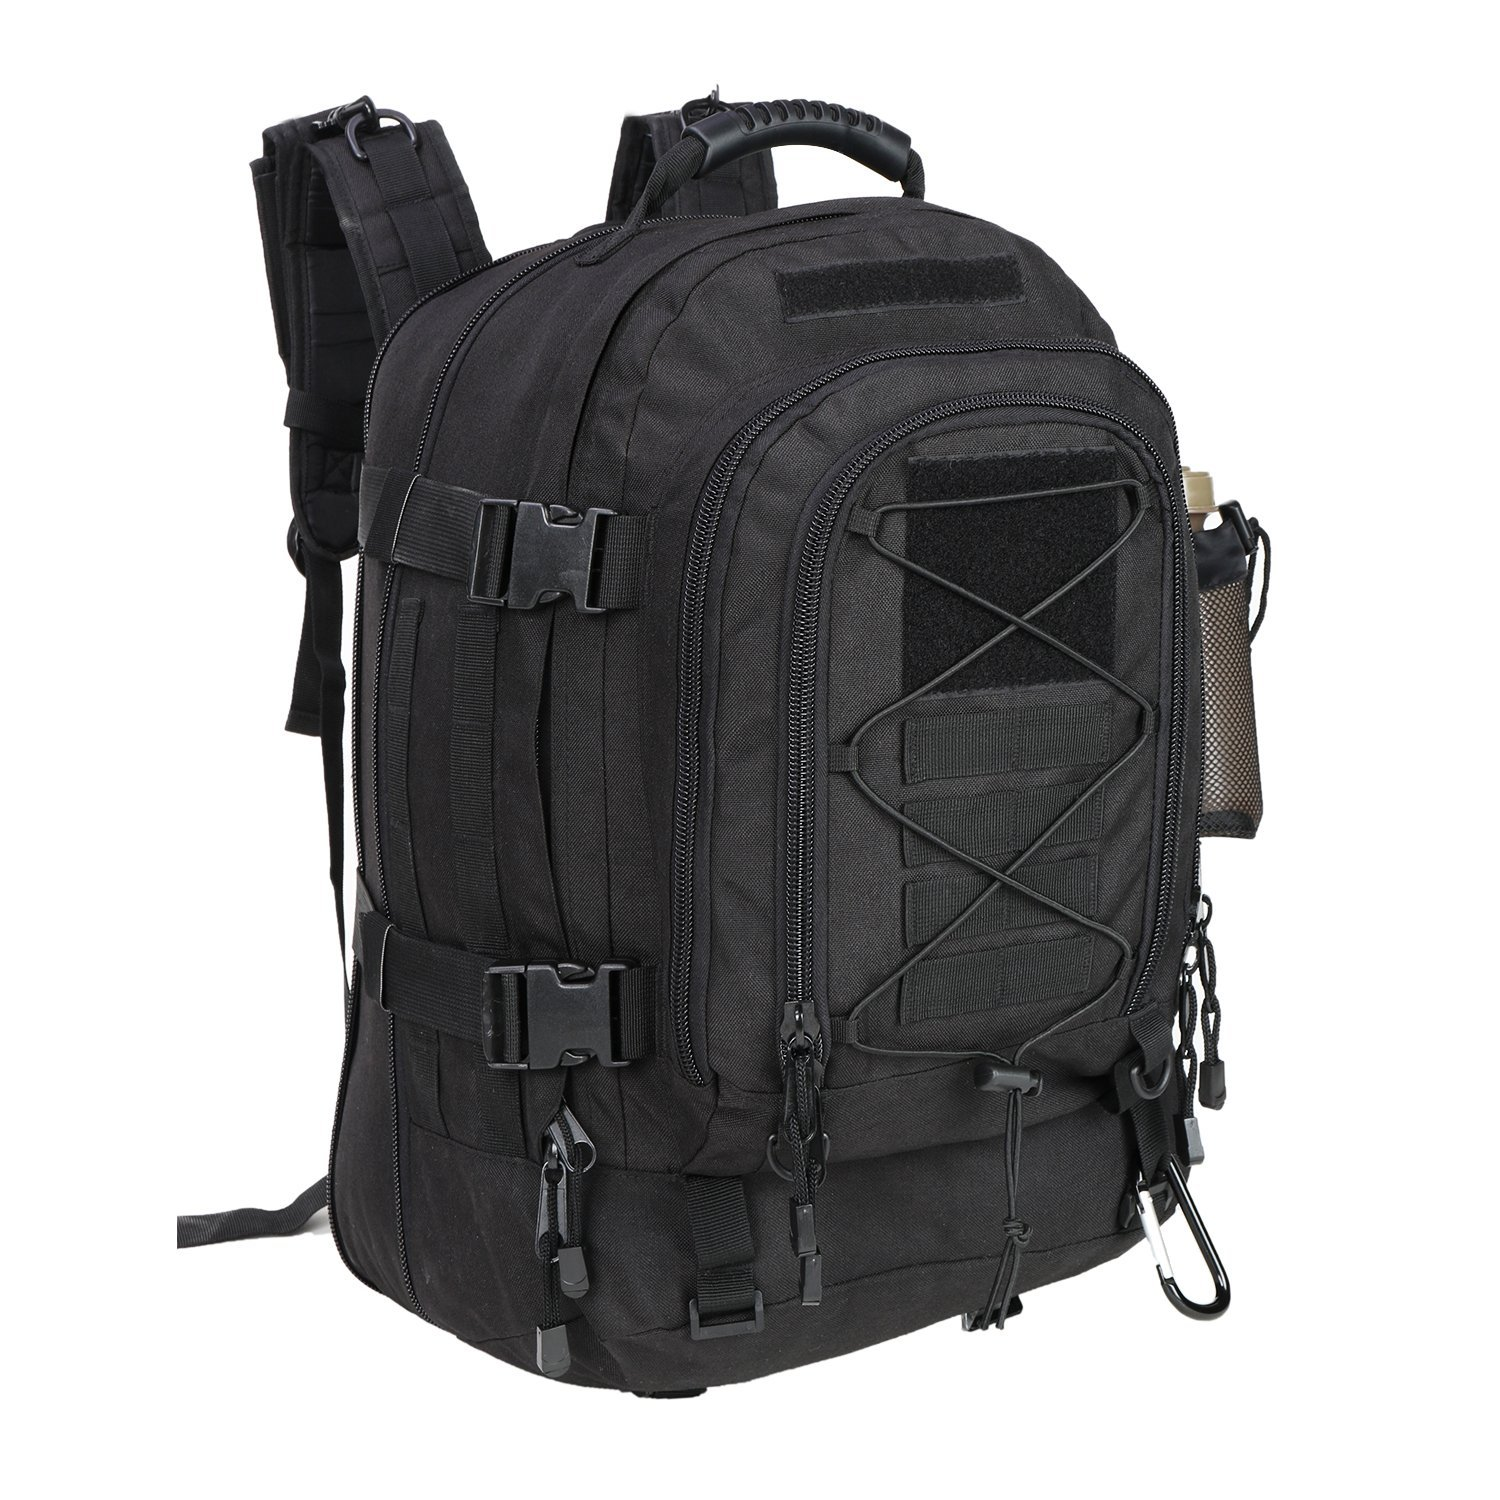 Military Tactical Backpack,Army Molle Assault Rucksack, Travel by ARMYCAMOUSA